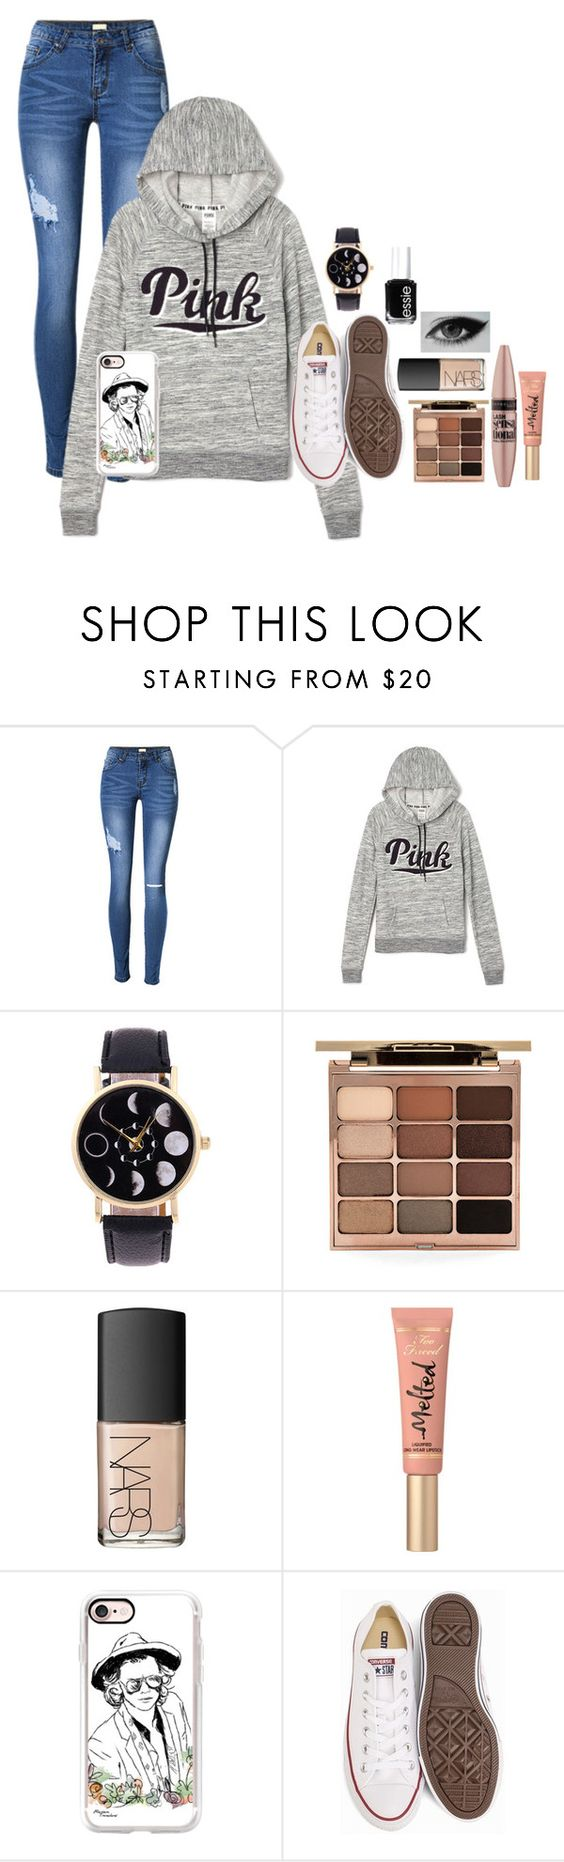 """You told me u loved me but that was just another one of your lies"" by jesuslovingirl ❤ liked on Polyvore featuring Victoria's Secret, Stila, NARS Cosmetics, Maybelline, Too Faced Cosmetics, Casetify, Converse and Essie"